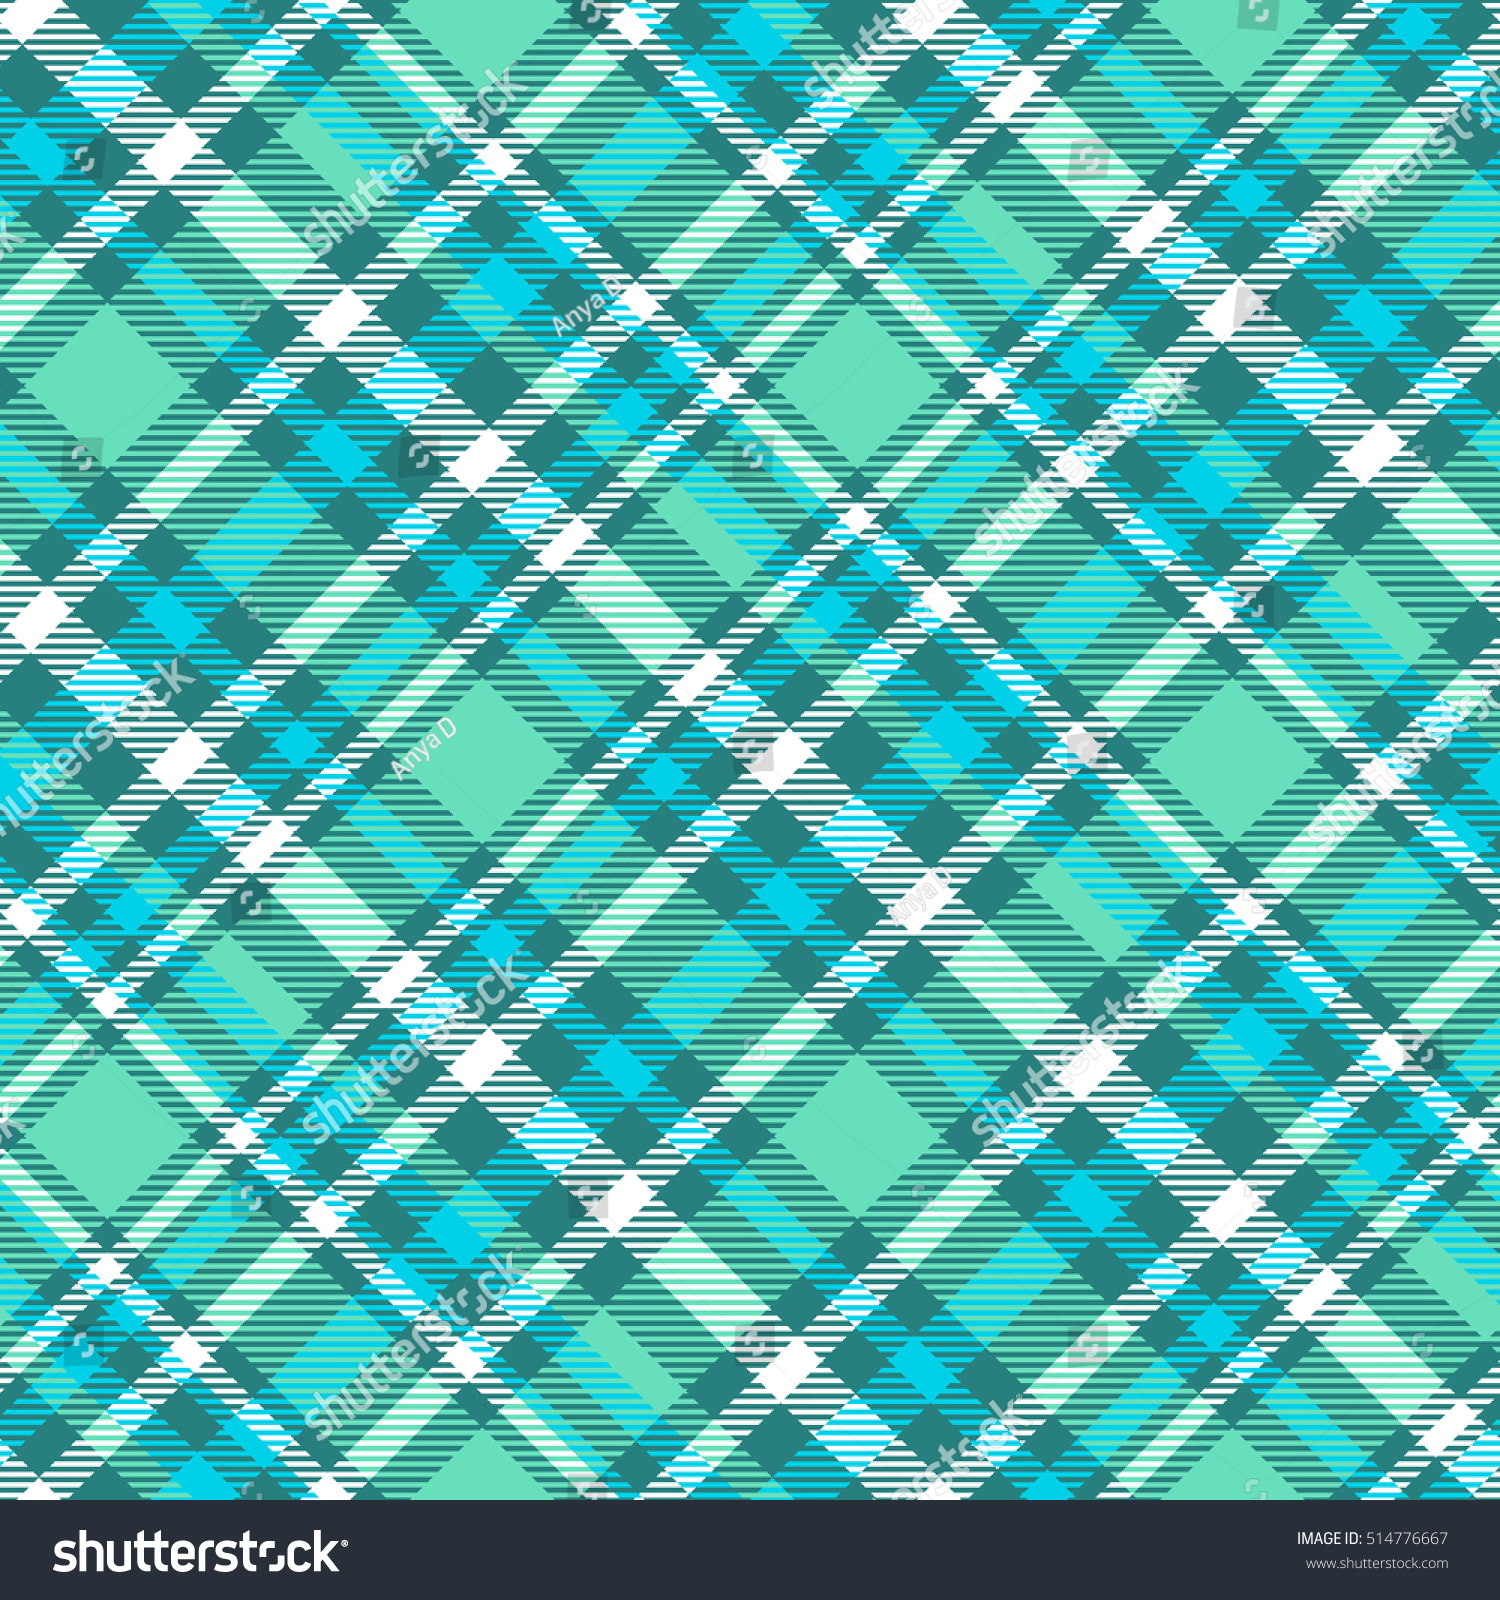 The Texture Of Teal And Turquoise: Seamless Tartan Plaid Pattern Palette Aqua Stock Vector